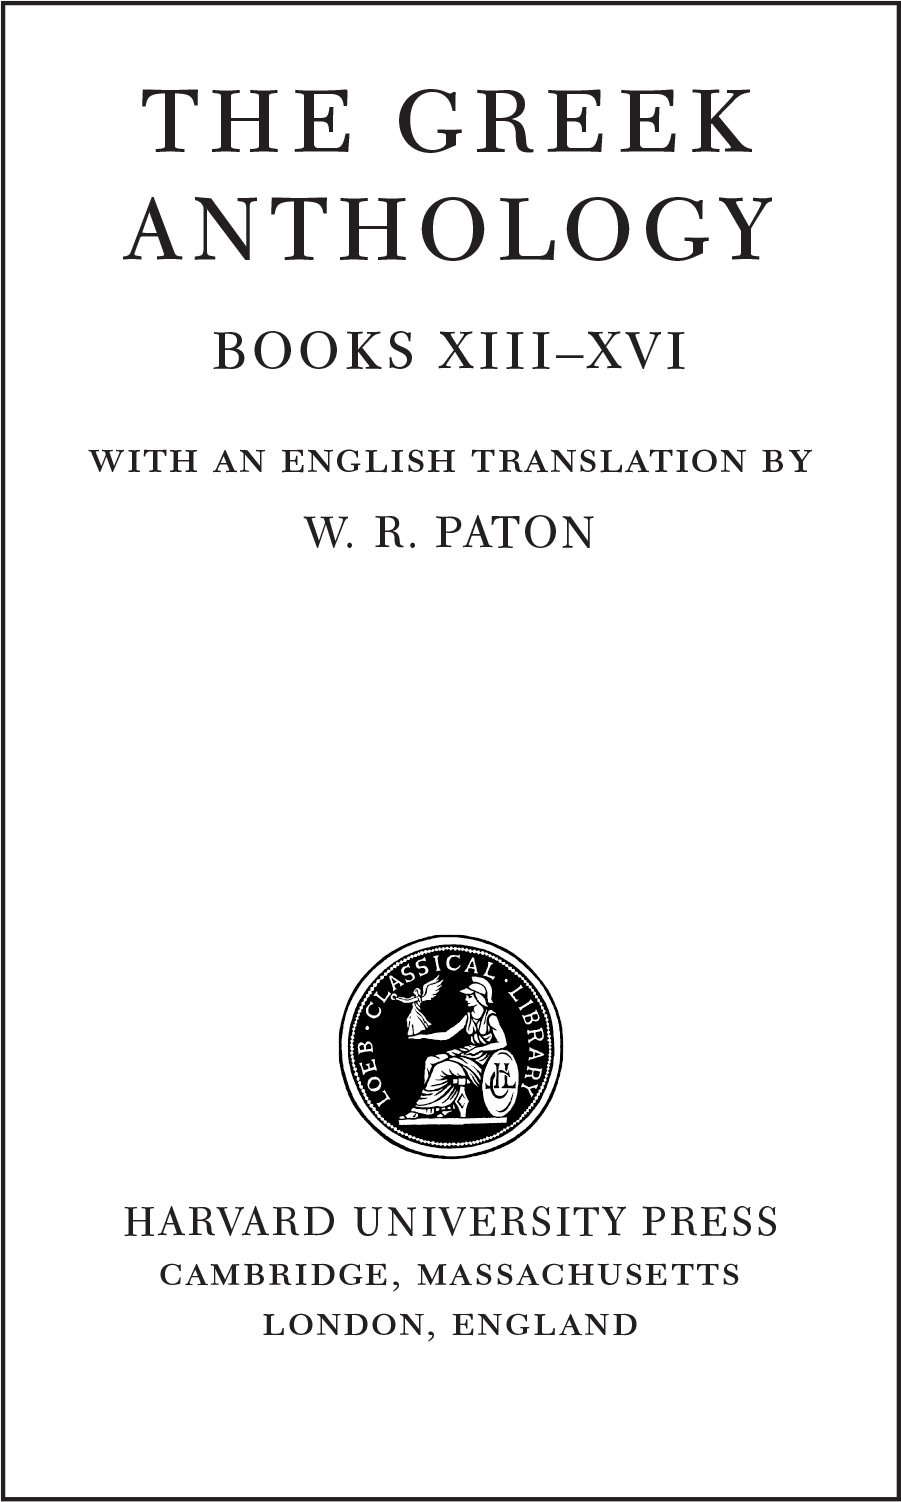 THE GREEK ANTHOLOGY BOOKS XIII–XVI  WITH AN ENGLISH TRANSLATION BY W. R. PATON  HARVARD UNIVERSITY PRESS CAMBRIDGE, MASSACHUSETTS LONDON, ENGLAND